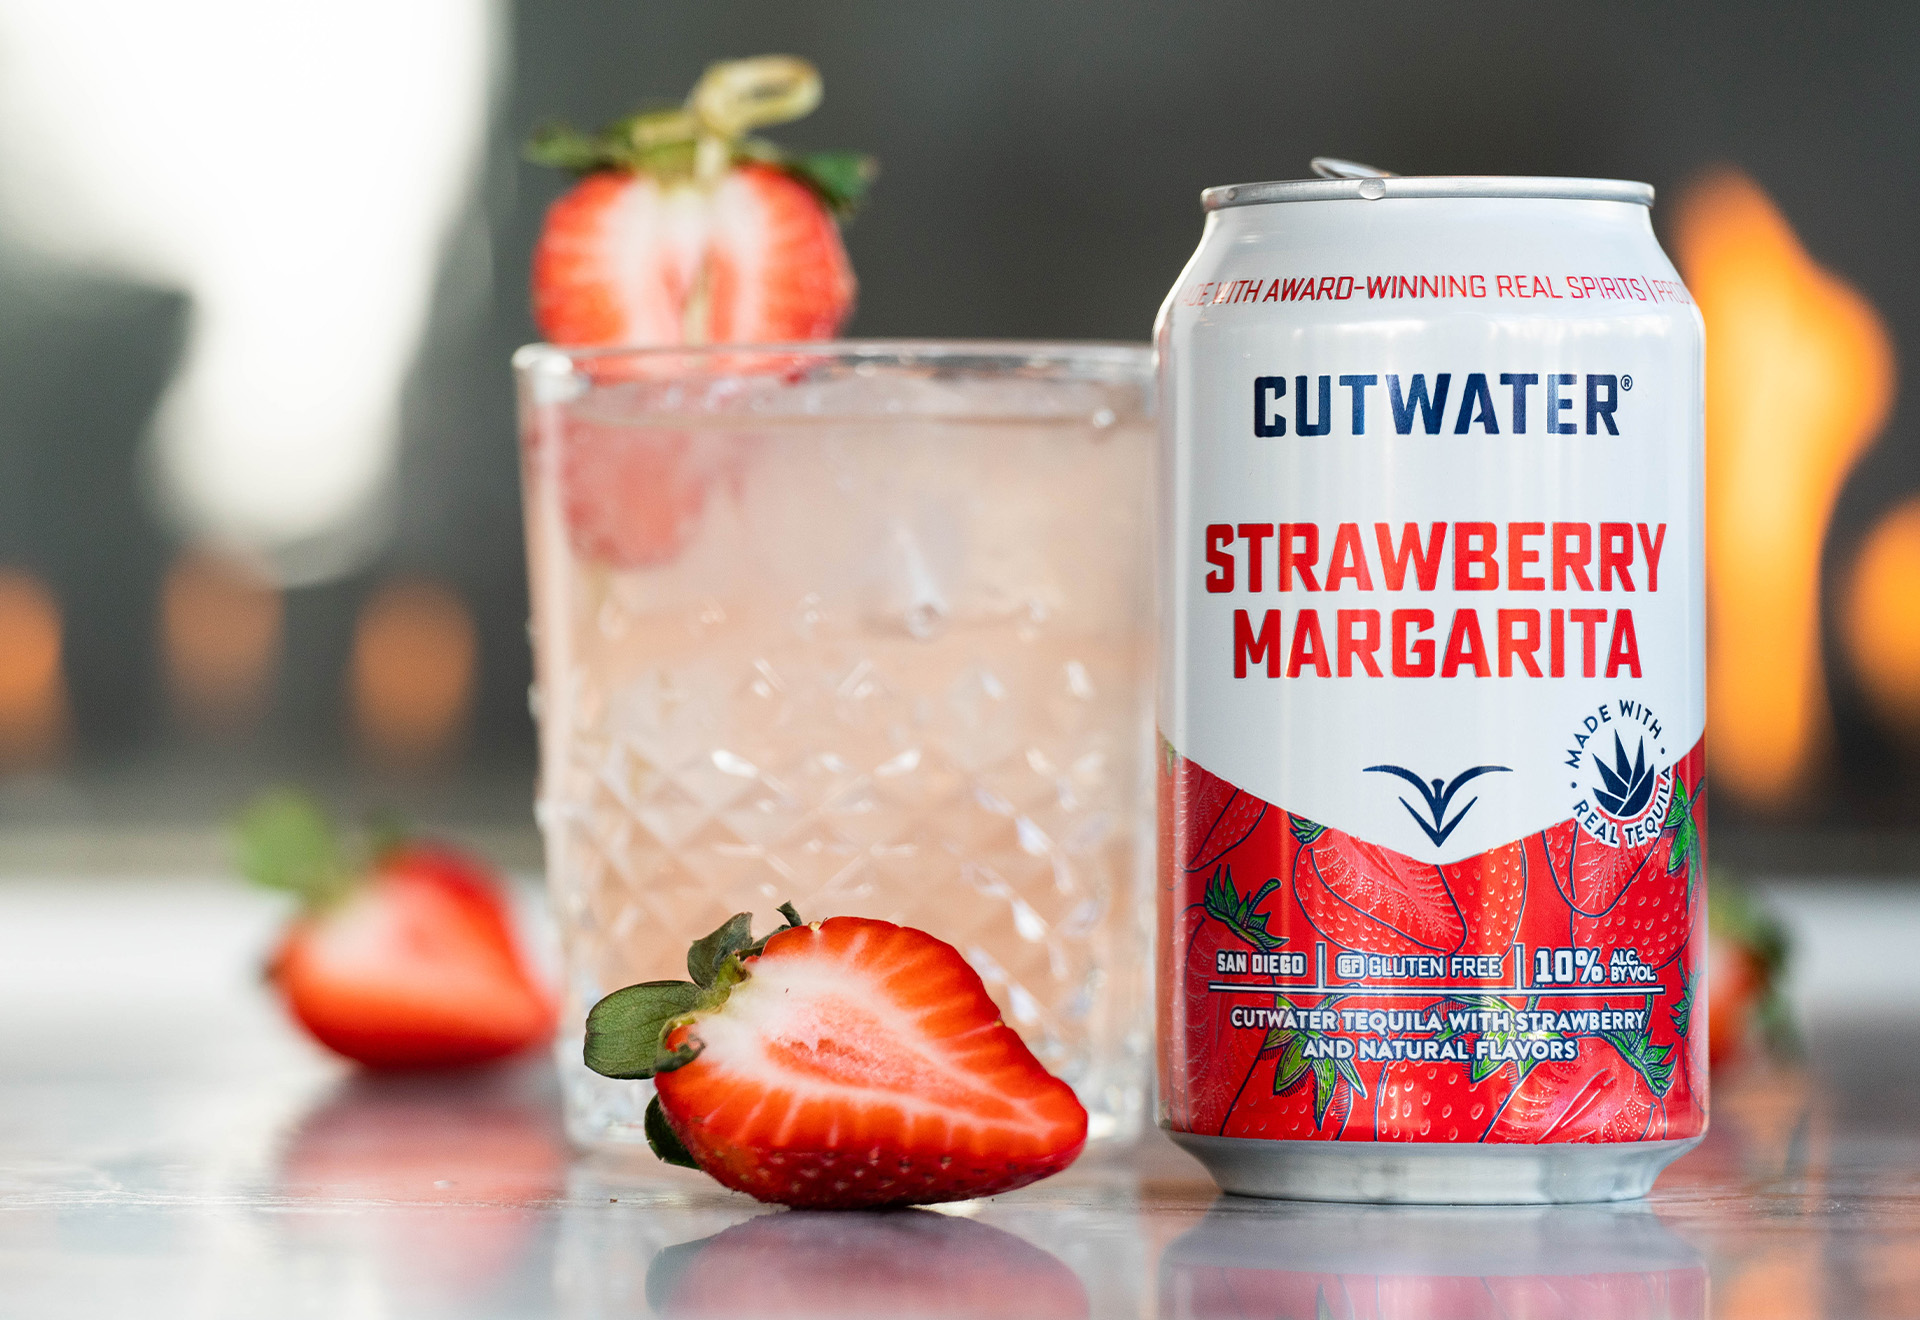 Cutwater Strawberry Margarita can with cocktail